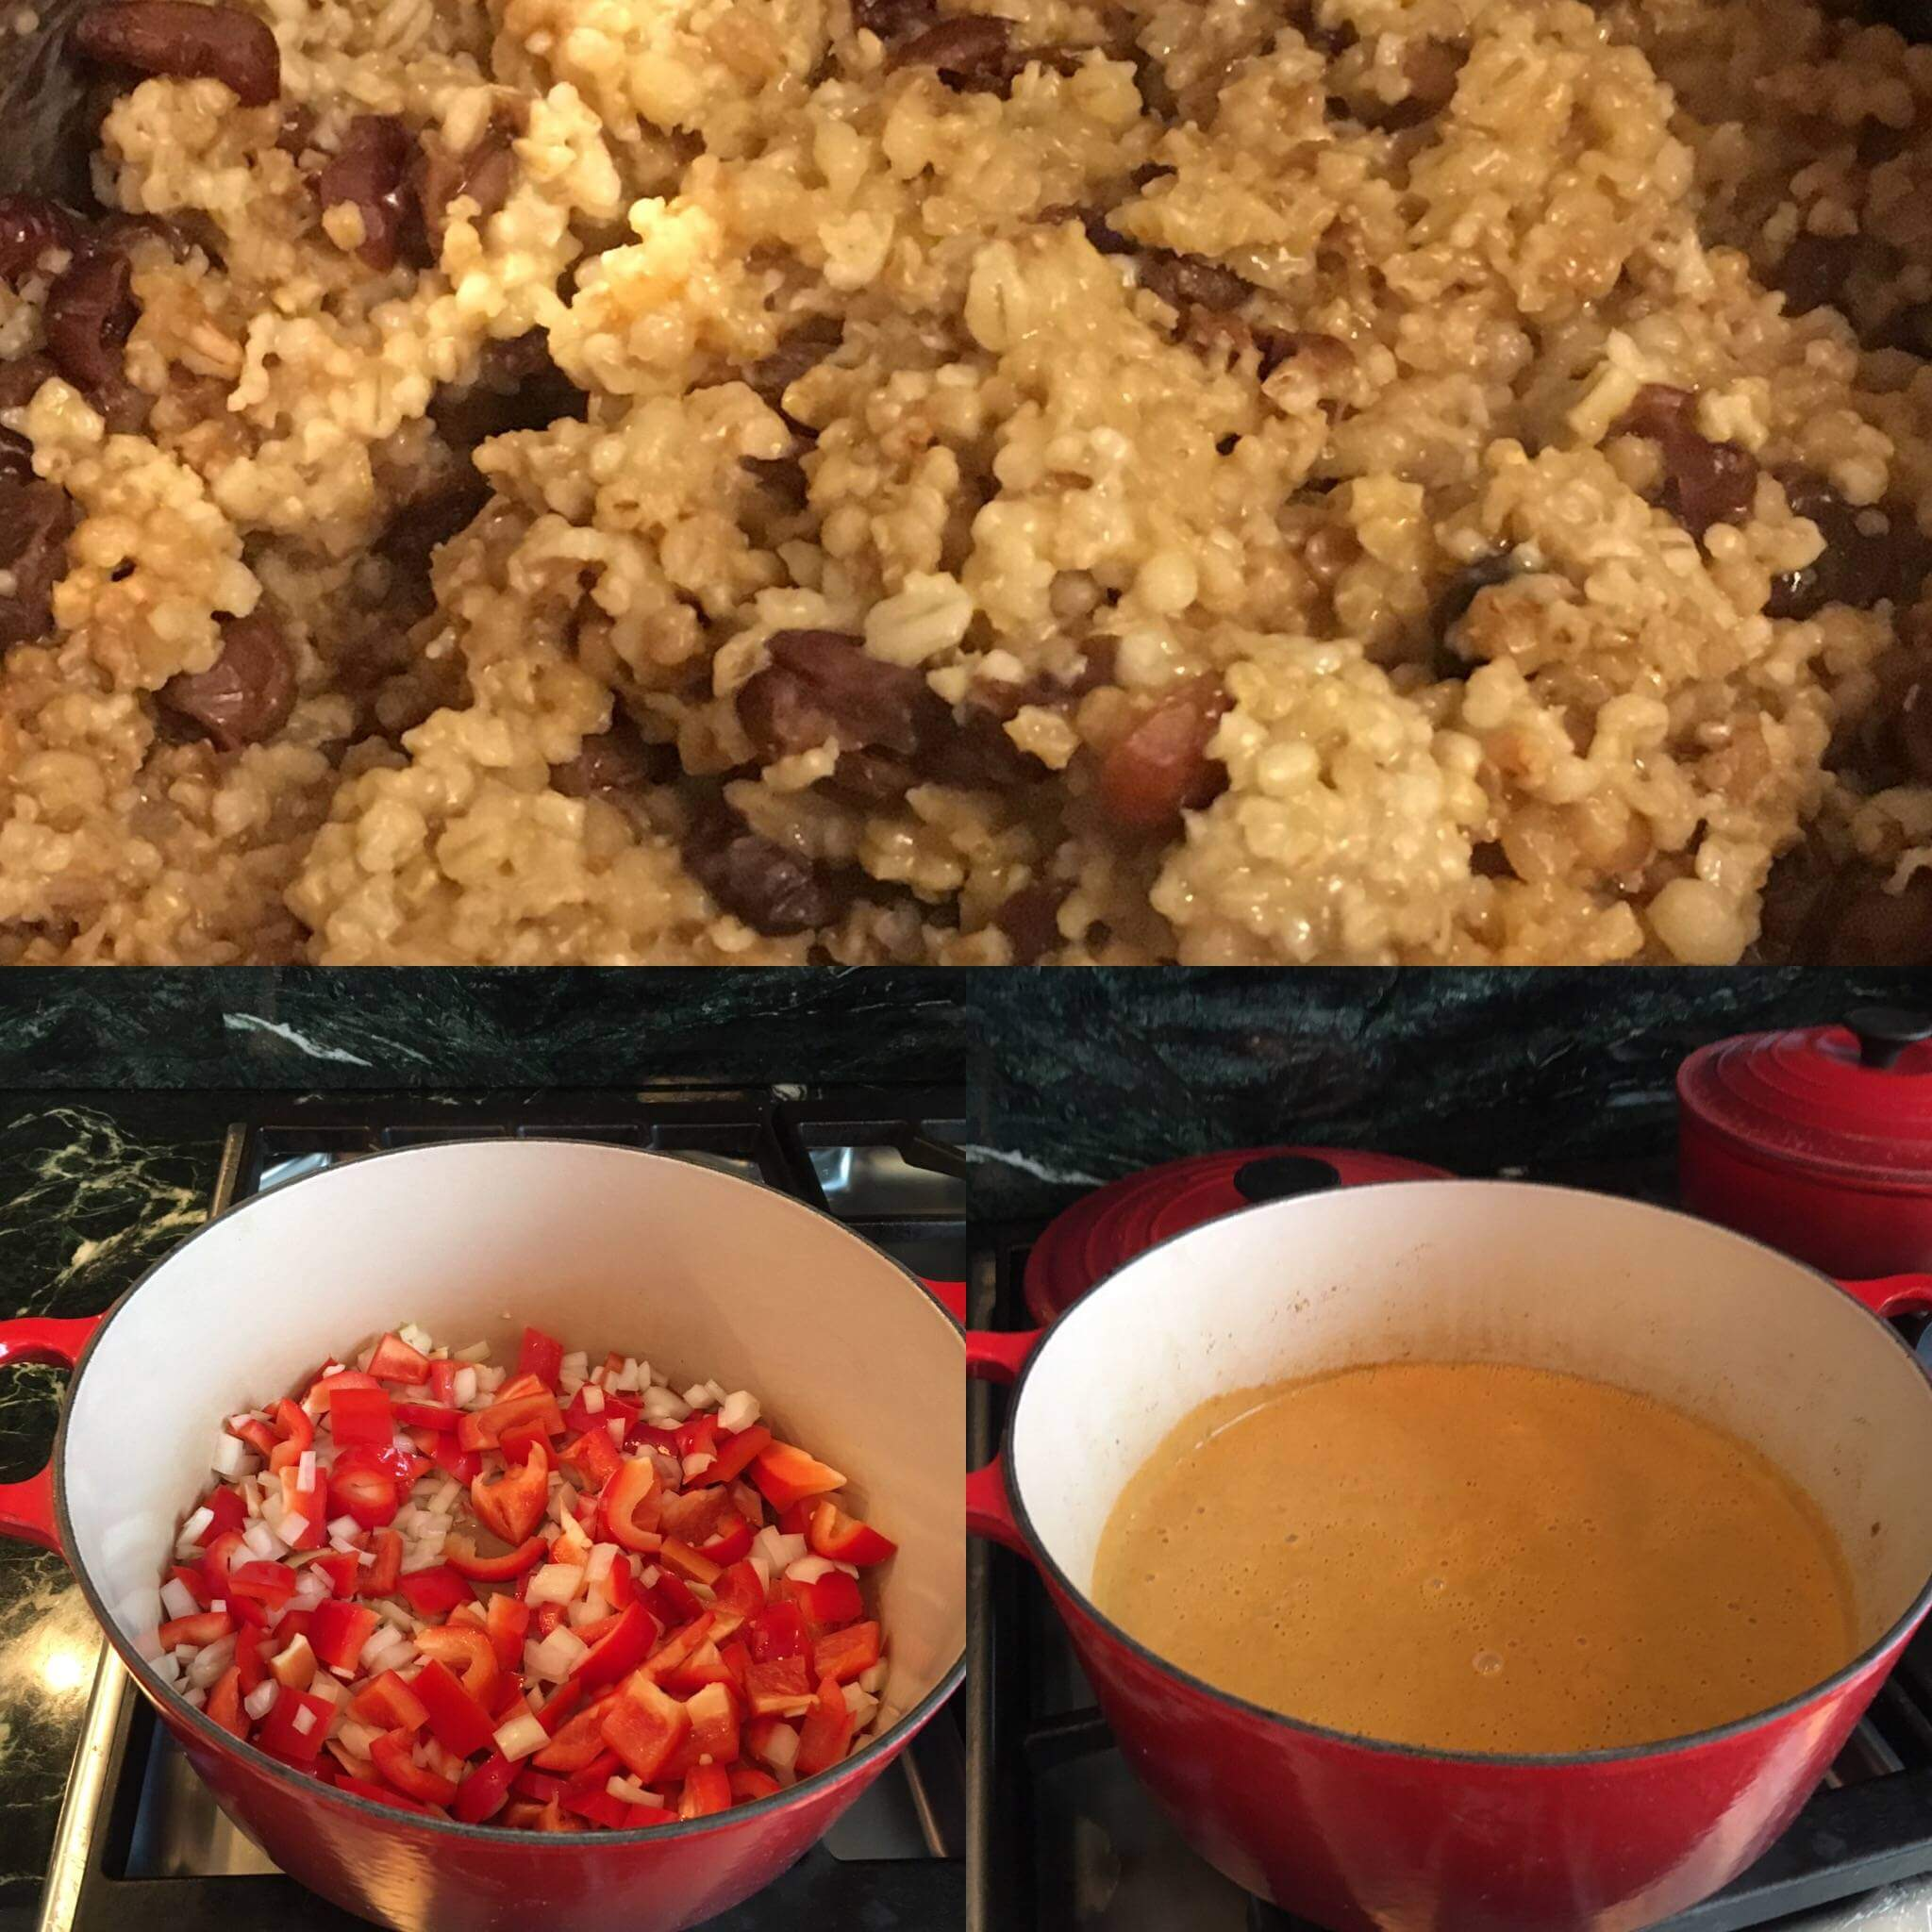 Weekly Recipe Round-Up: Slow Cooker Oatmeal and Red Pepper Paprika Soup with Pistachio